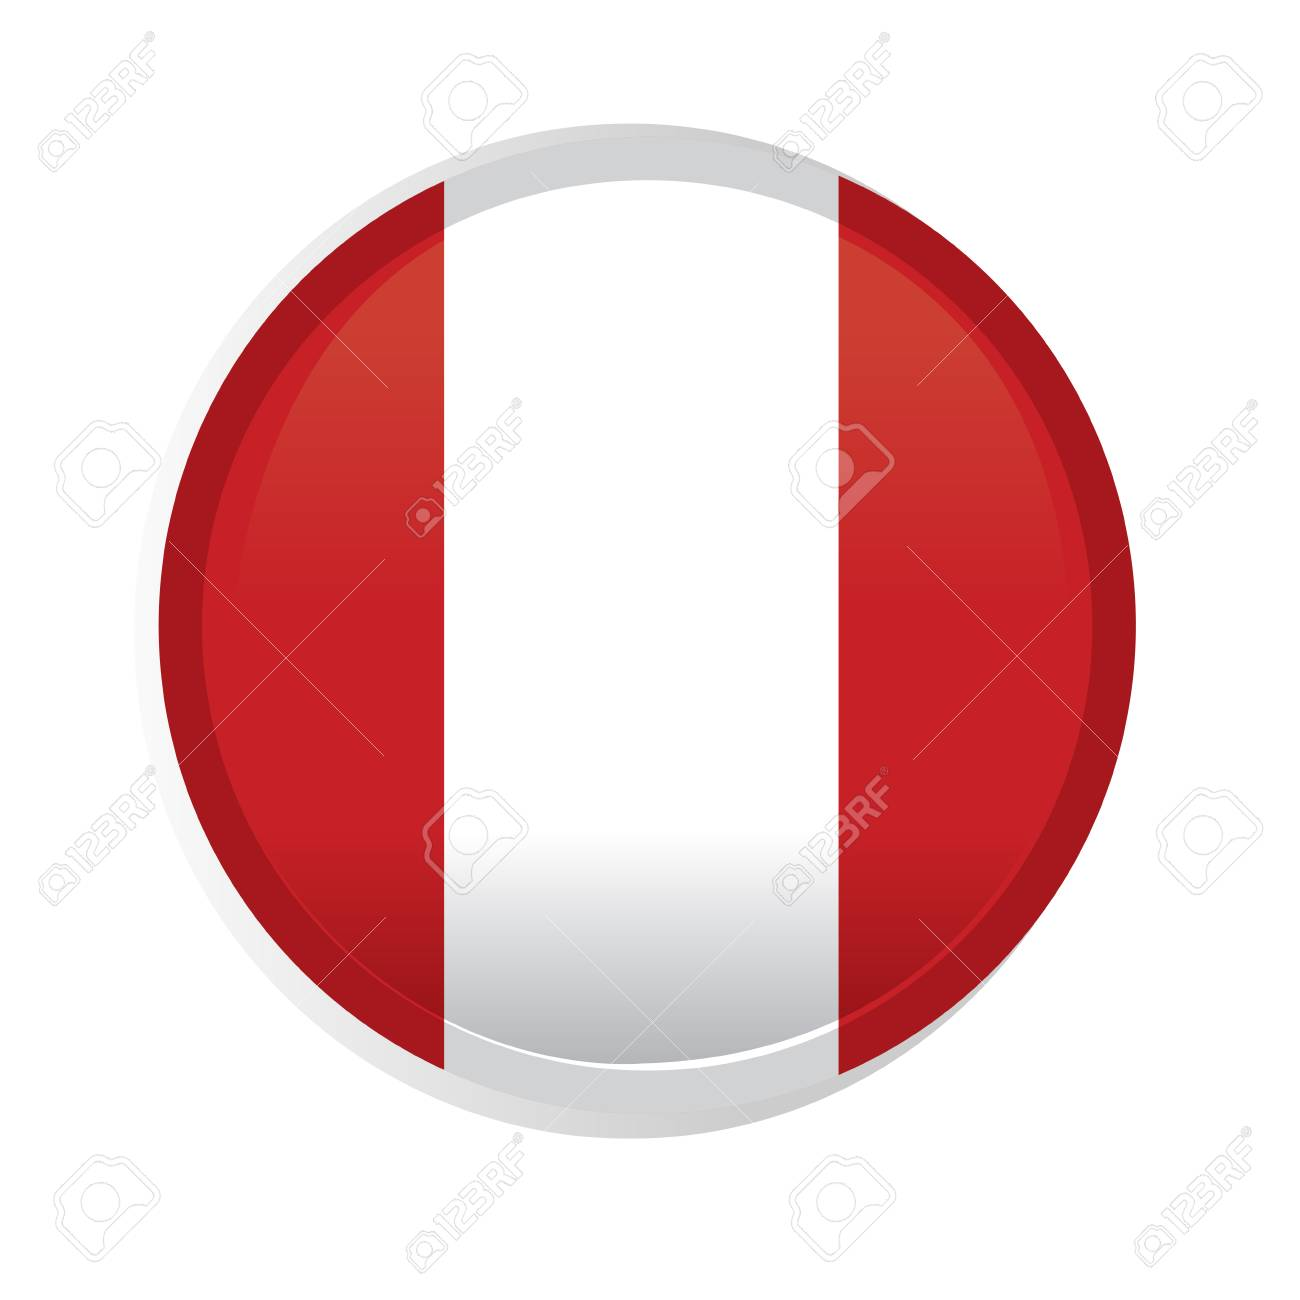 a round badge with the flag of peru on a white background royalty